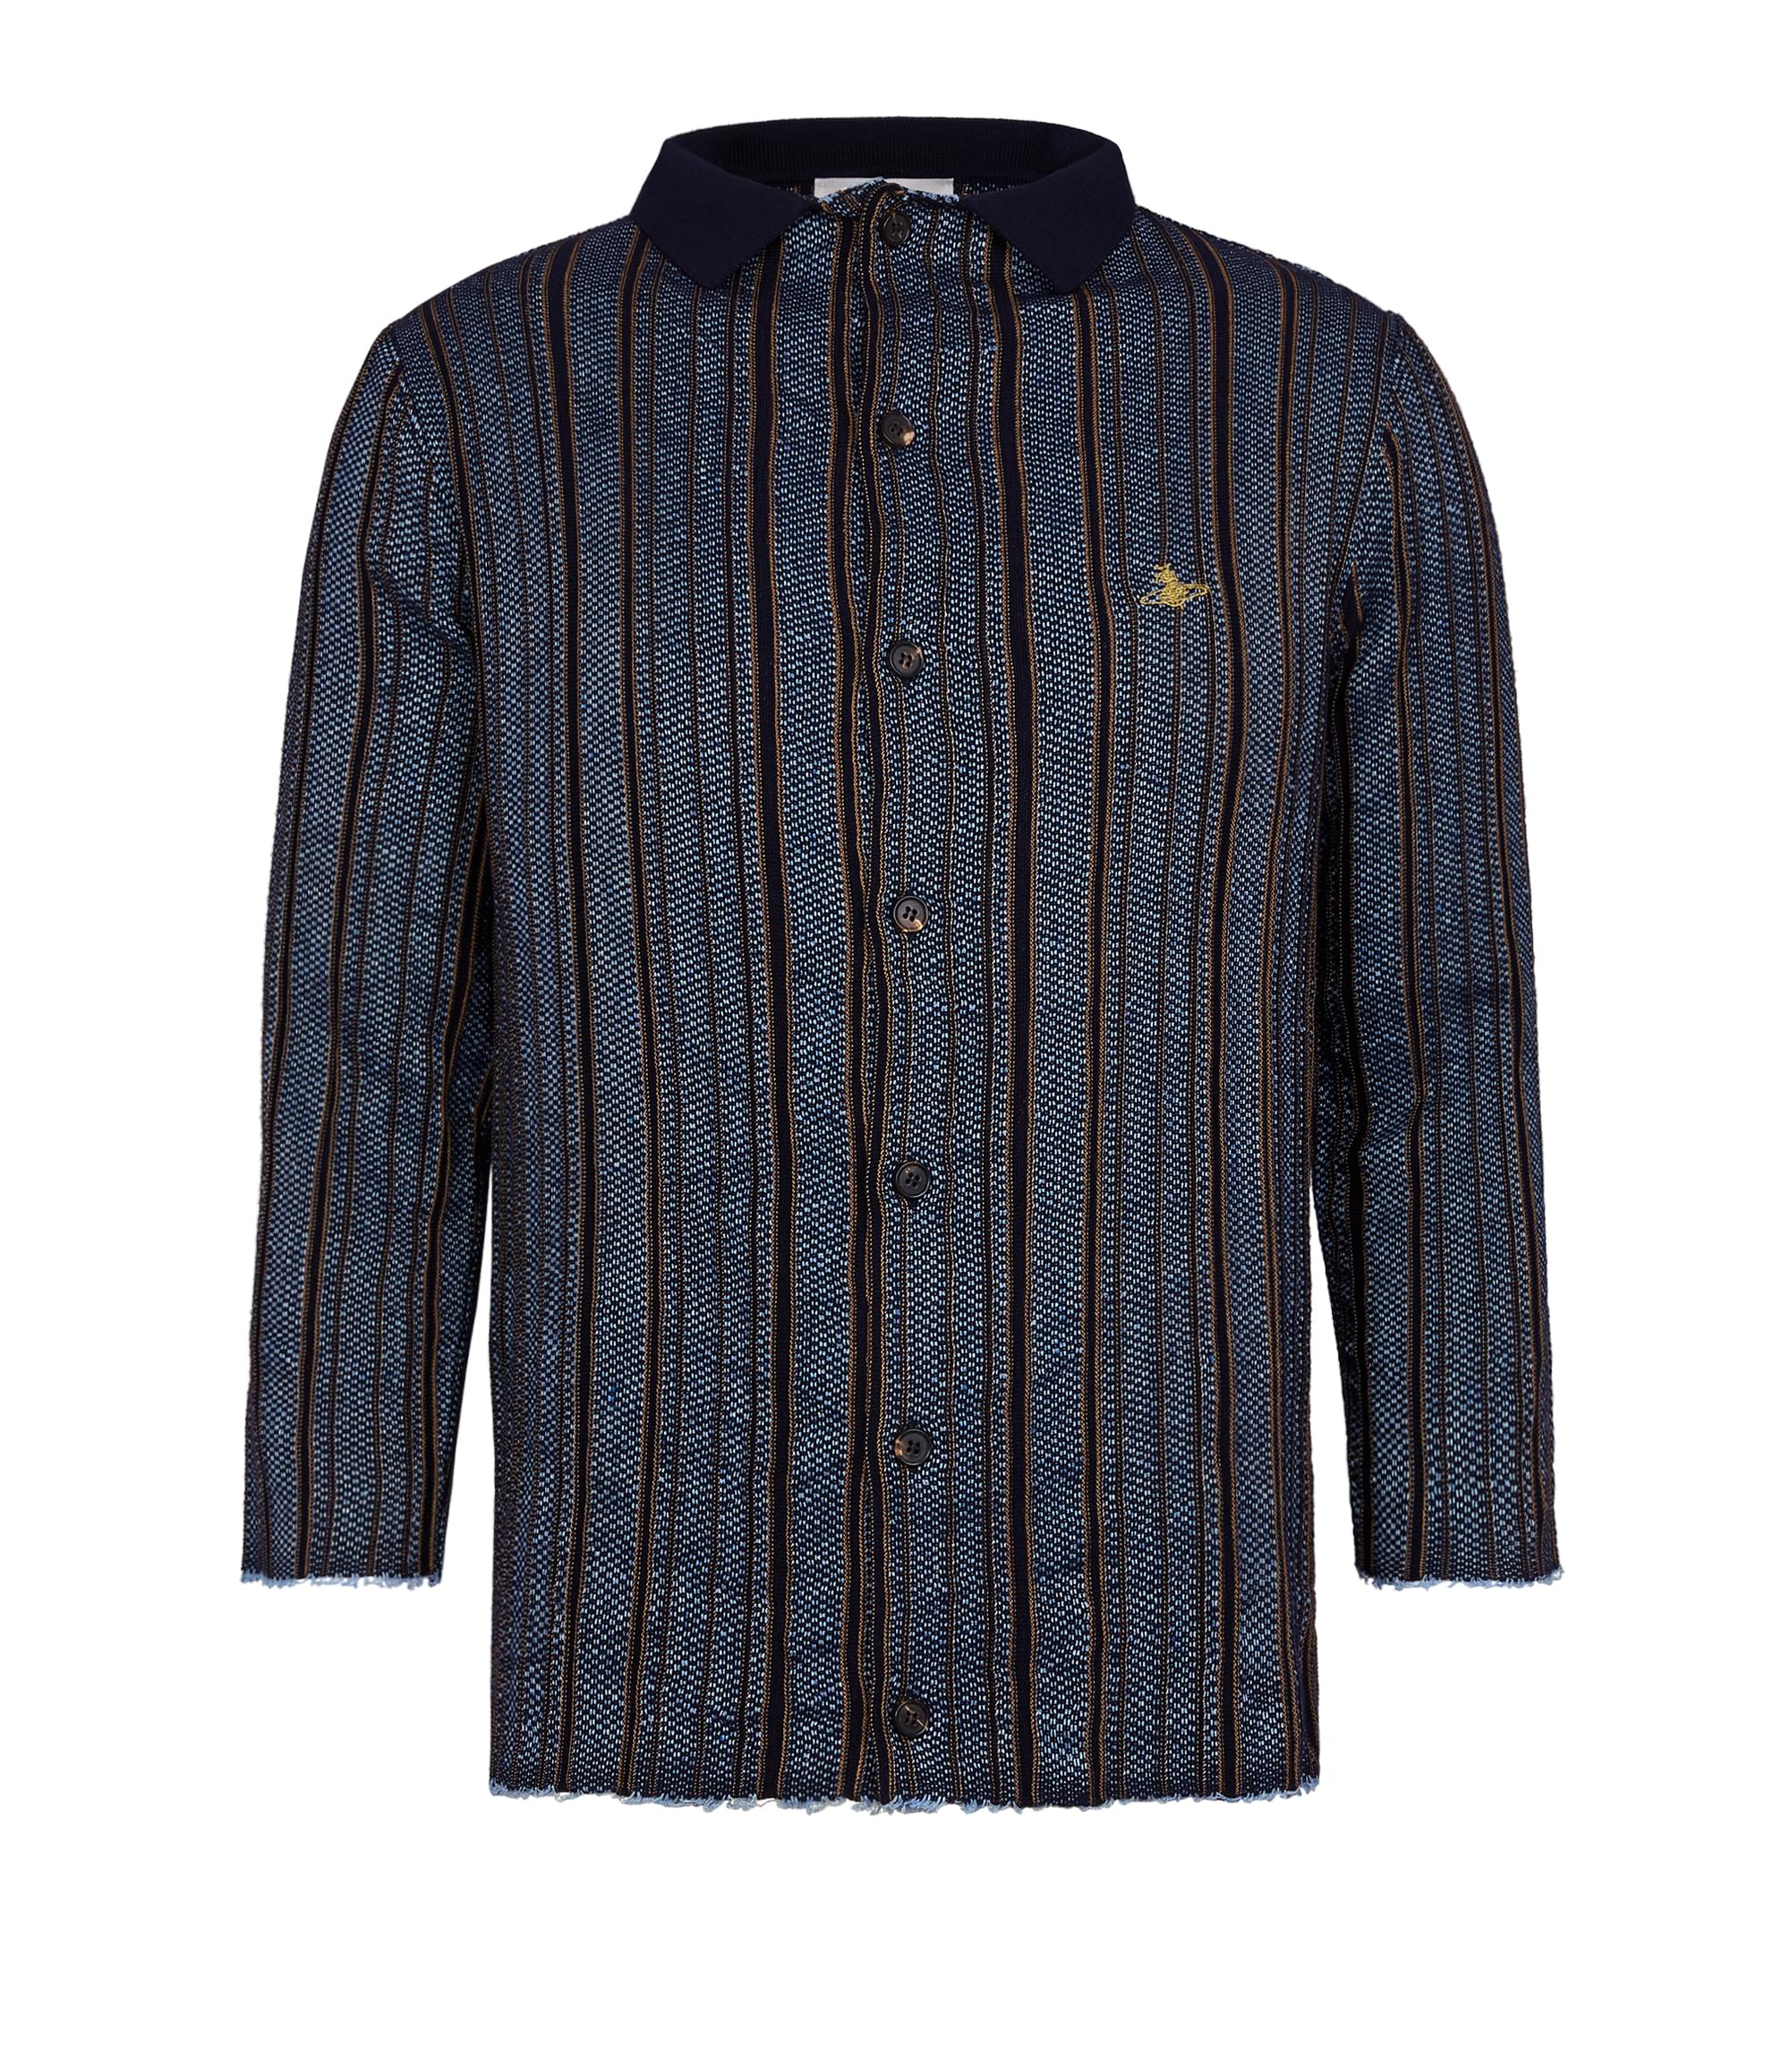 Vivienne Westwood Selvedge Knit Navy Stripes